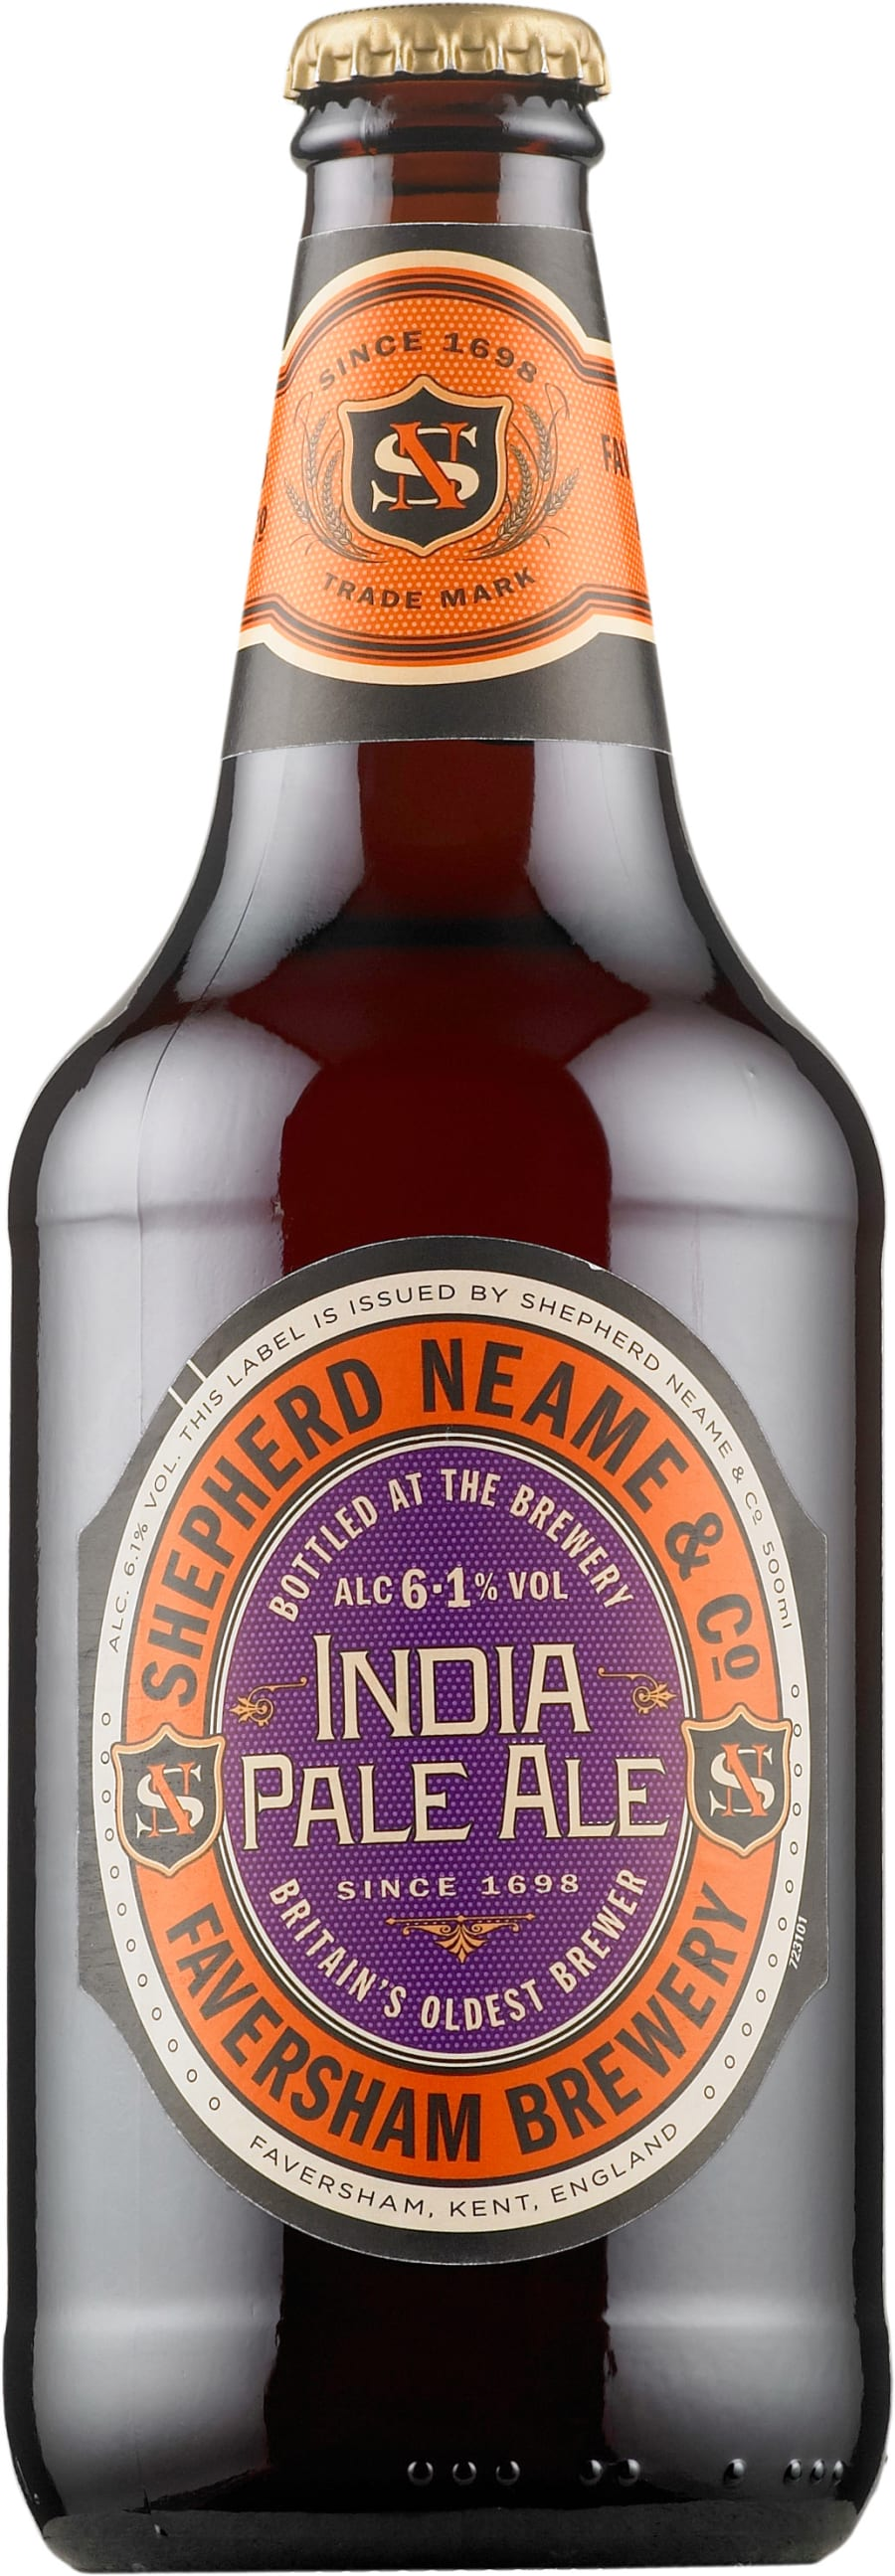 Myth 4: George Hodgson invented IPA to survive the long trip to India